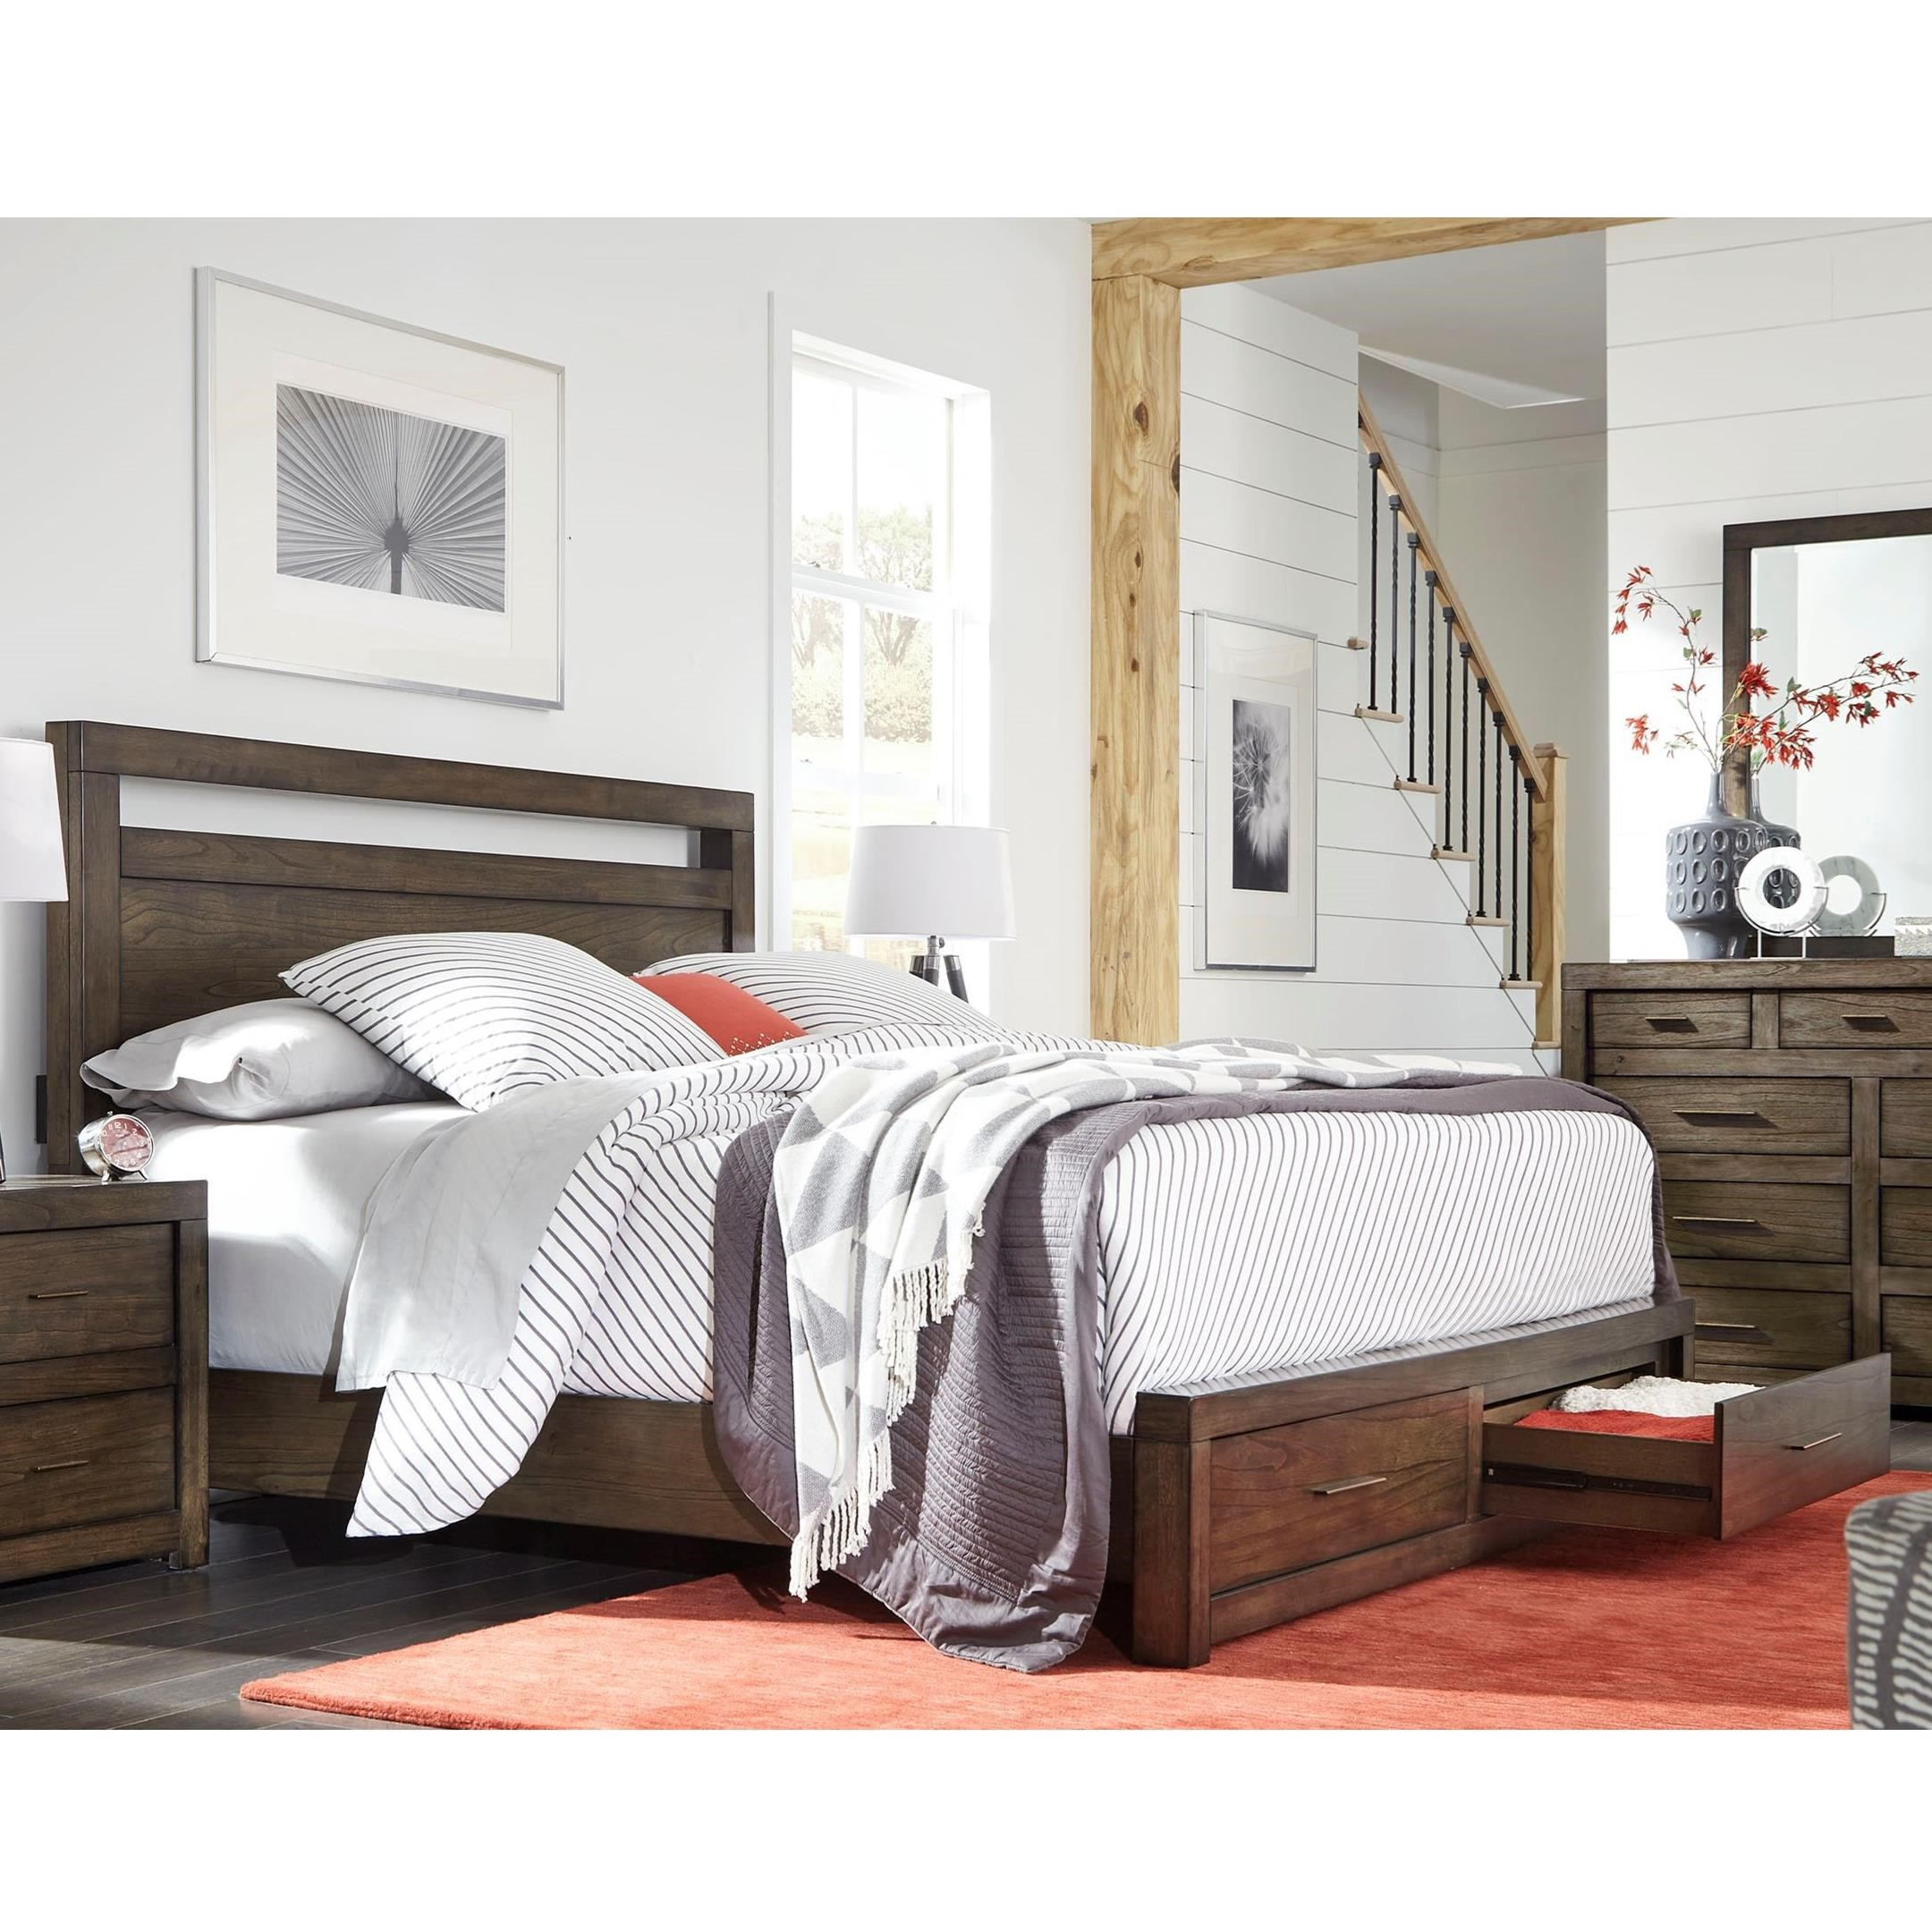 Modern Loft Queen Panel Storage Bed by Aspenhome at Stoney Creek Furniture